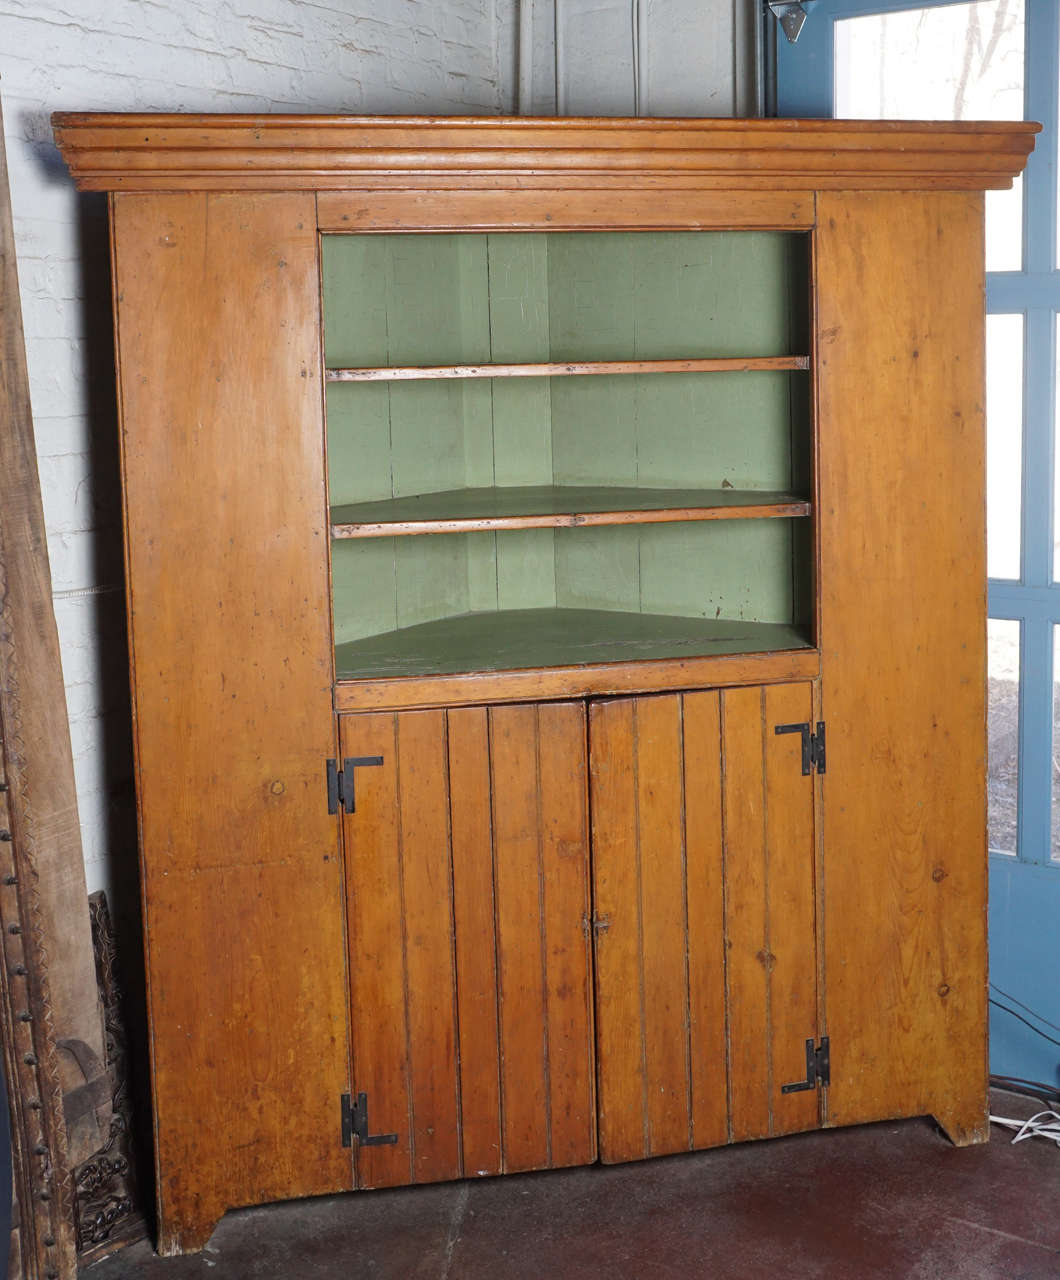 Knotty Pine Kitchen Cabinets For Sale: 19th Century Rustic American Corner Cupboard For Sale At